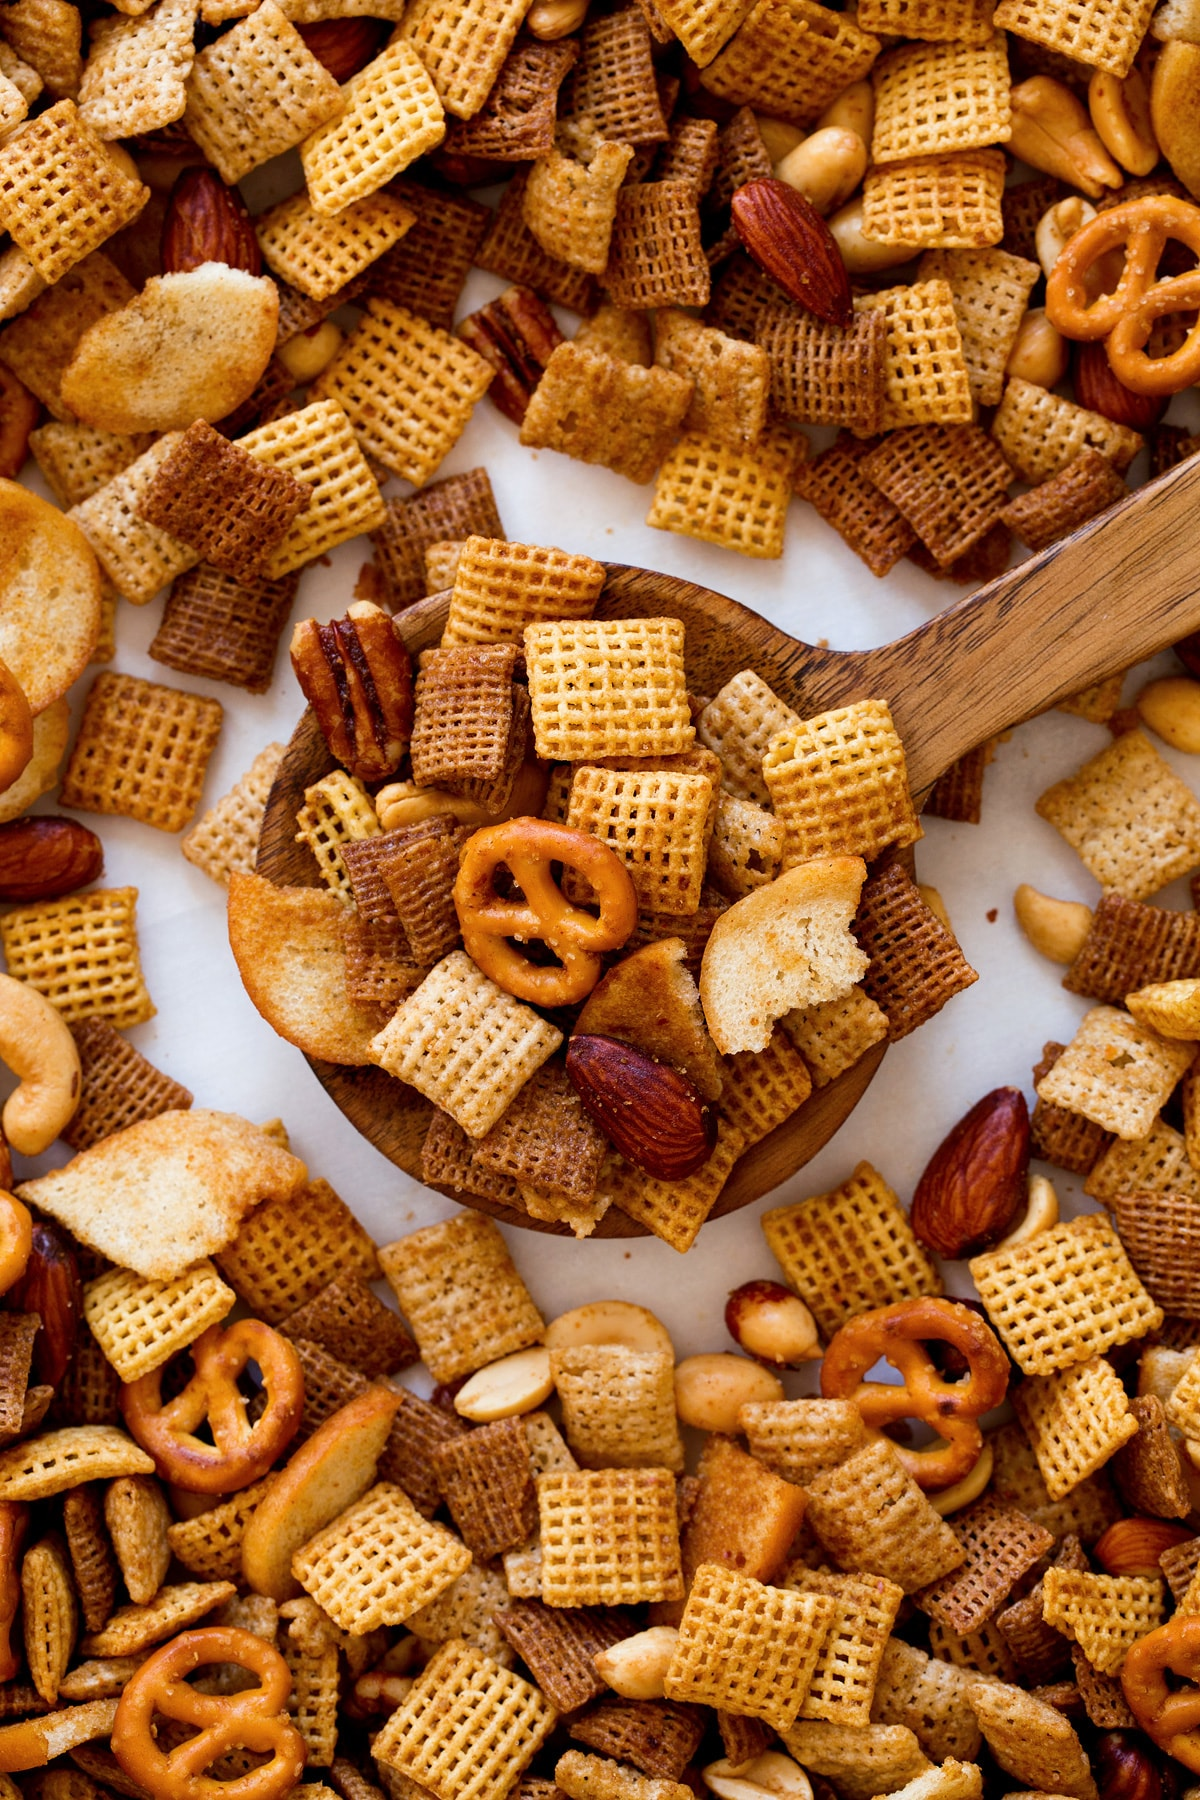 Wood spoon full of Chex Mix shown close up.